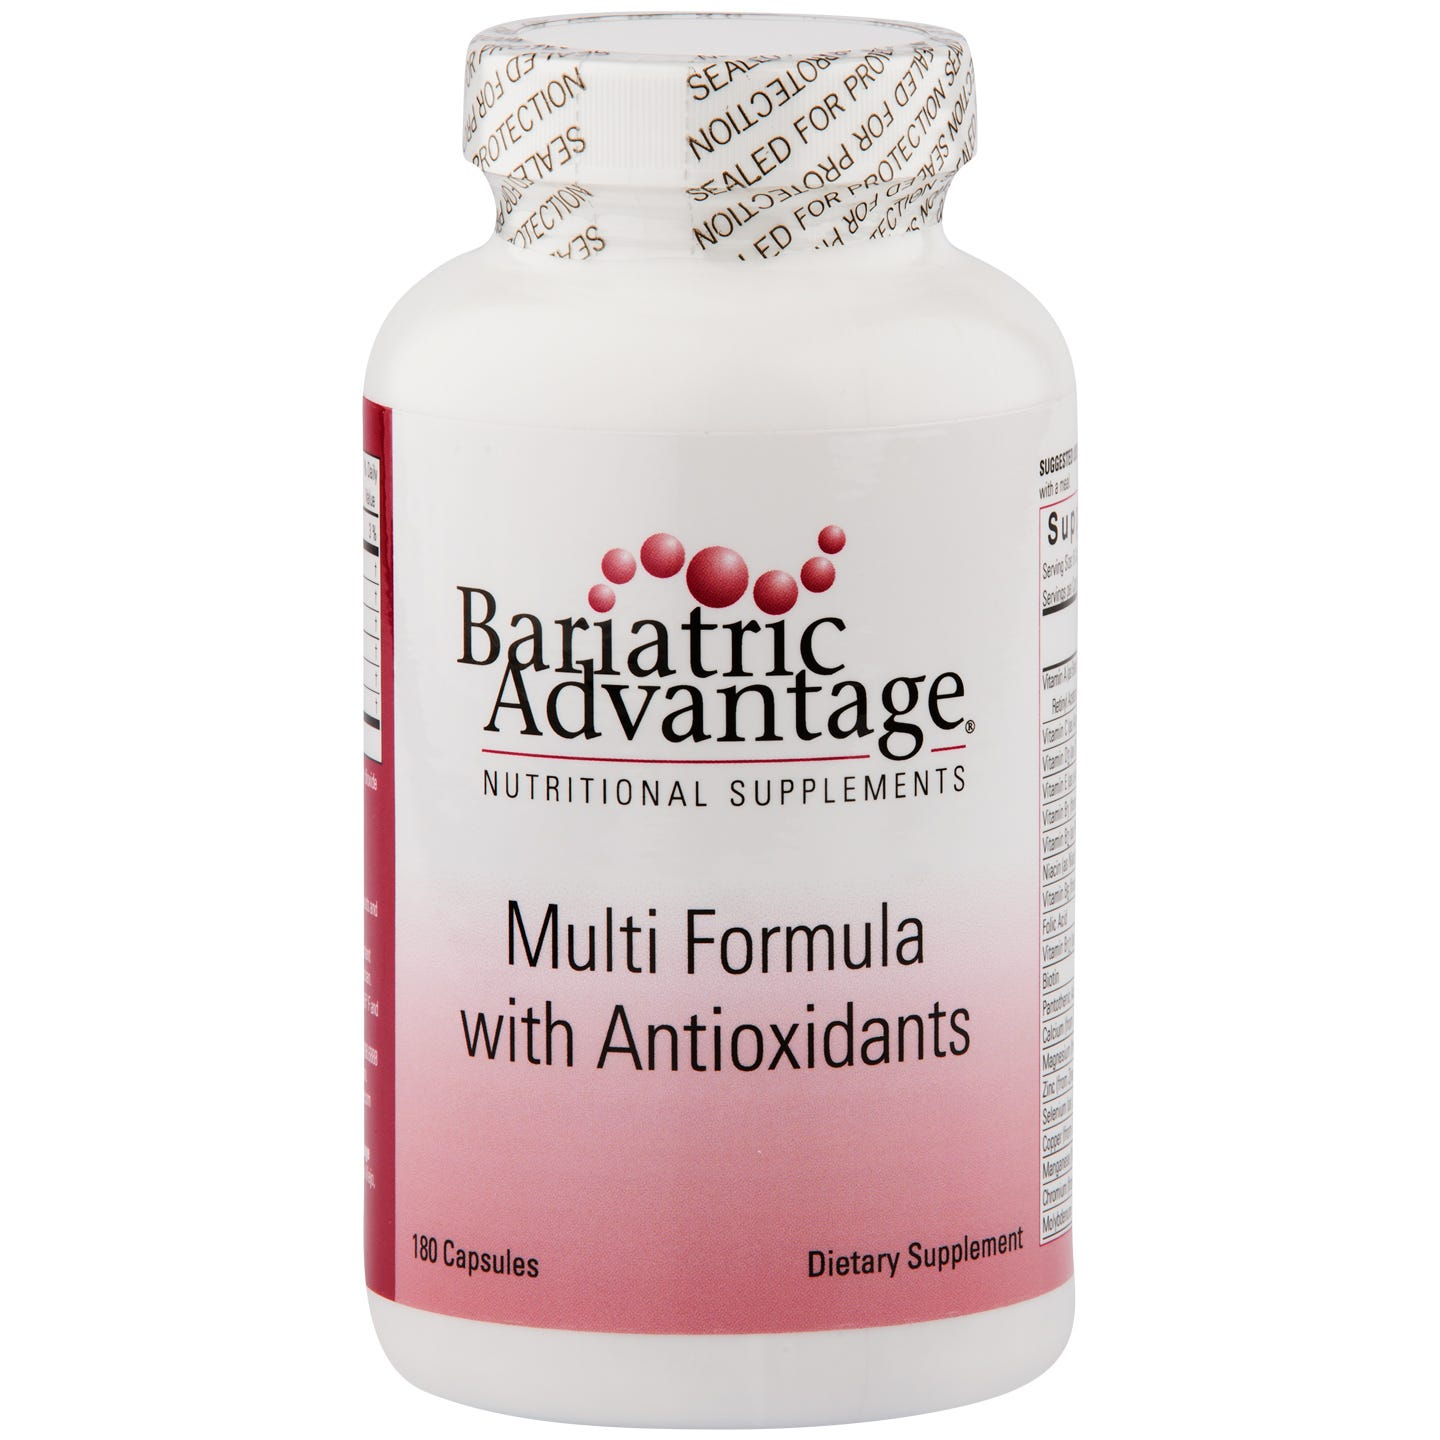 Multi-Formula (180 ct) - Bariatric Advantage - Rapid Diet Weight Loss Products Shop